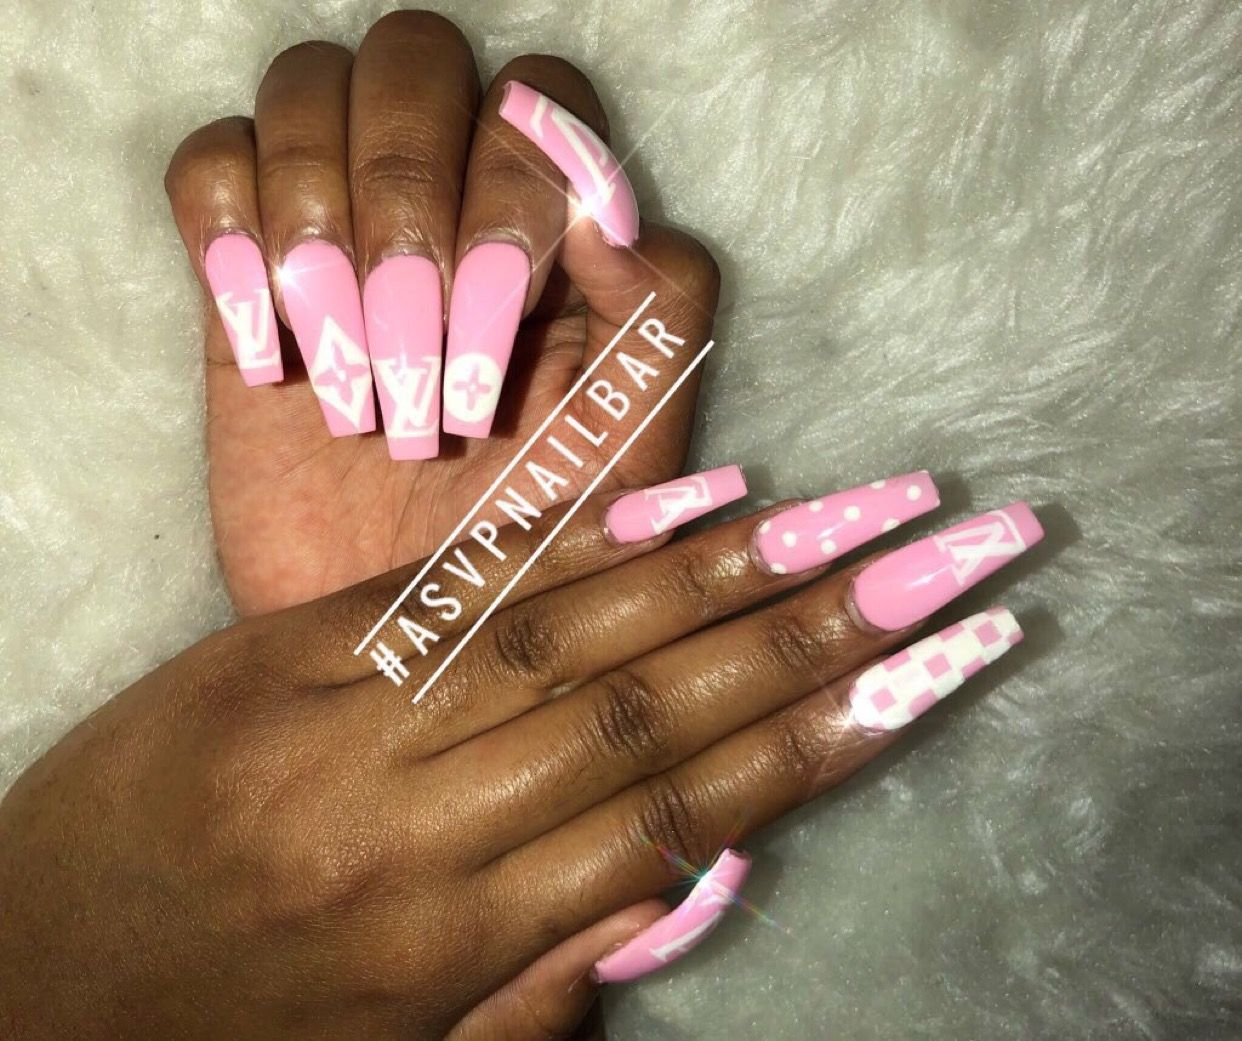 Xoxo Use My Uber Code Daijaha1 To Get 15 Off Your First Ride Stylish Nails Art Shiny Nails Designs Nail Designs The realreal is the world's #1 luxury consignment online store.